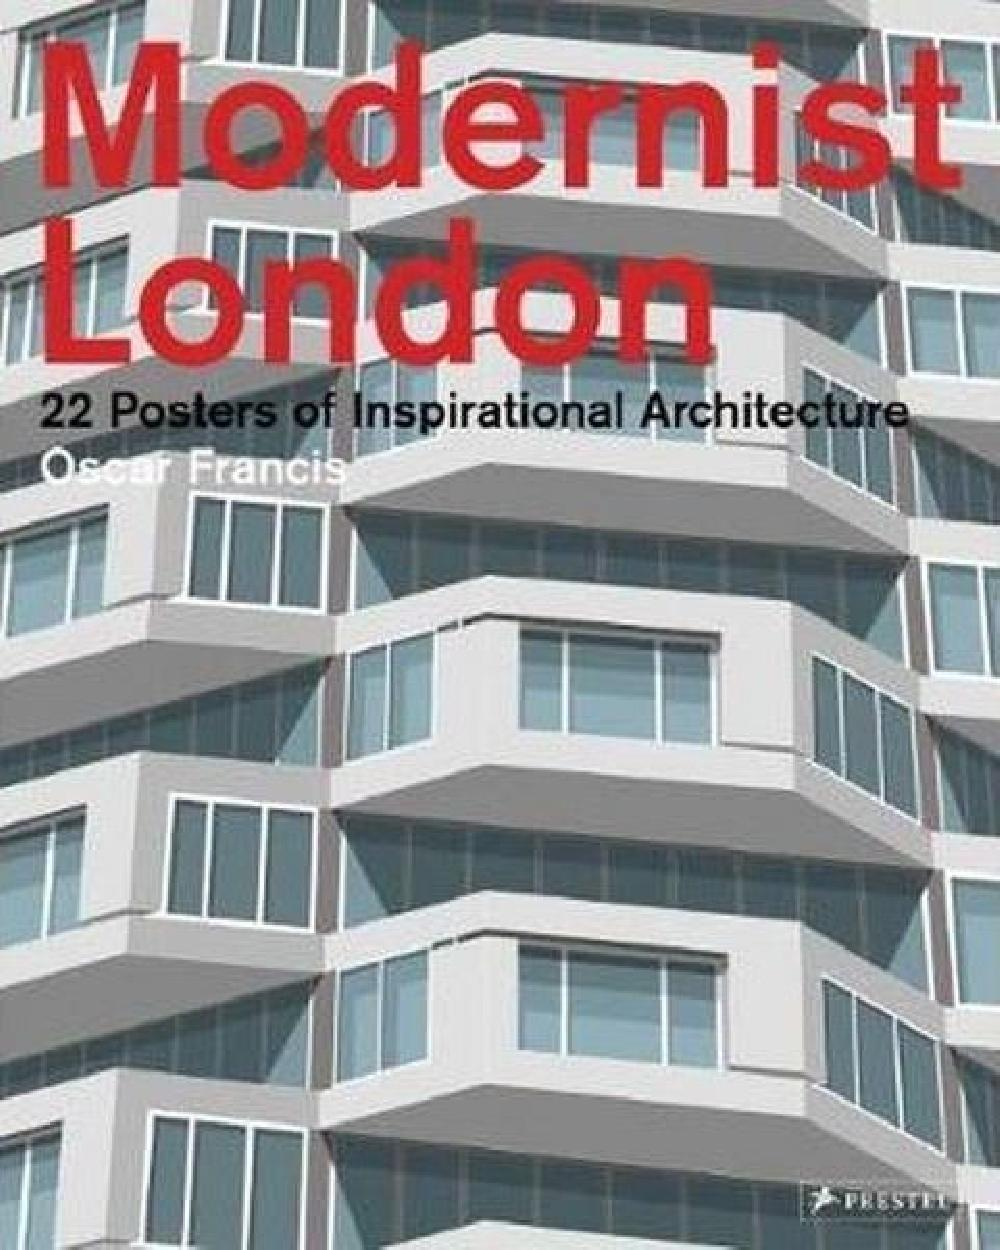 Modernist London: 22 Posters of Inspirational Architecture by Oscar Francis